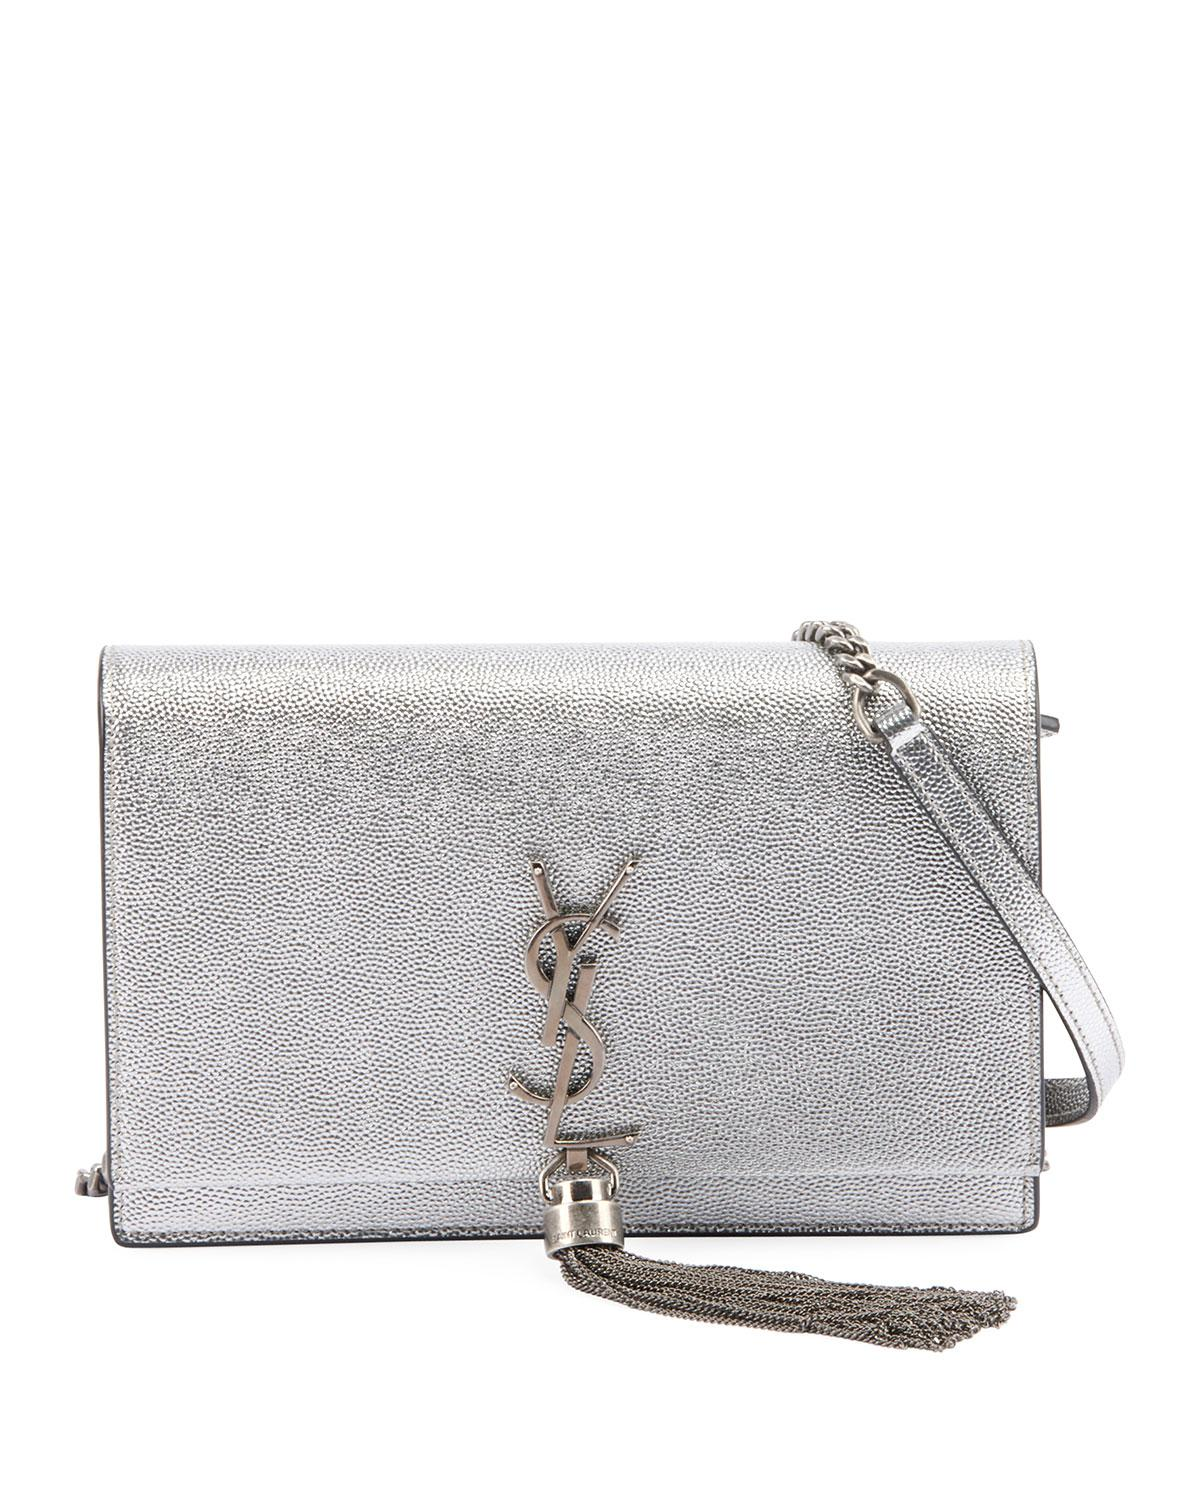 d446f26a6479 Saint Laurent. Women s Kate Monogram Ysl Small Crackled Metallic Tassel  Wallet On Chain ...